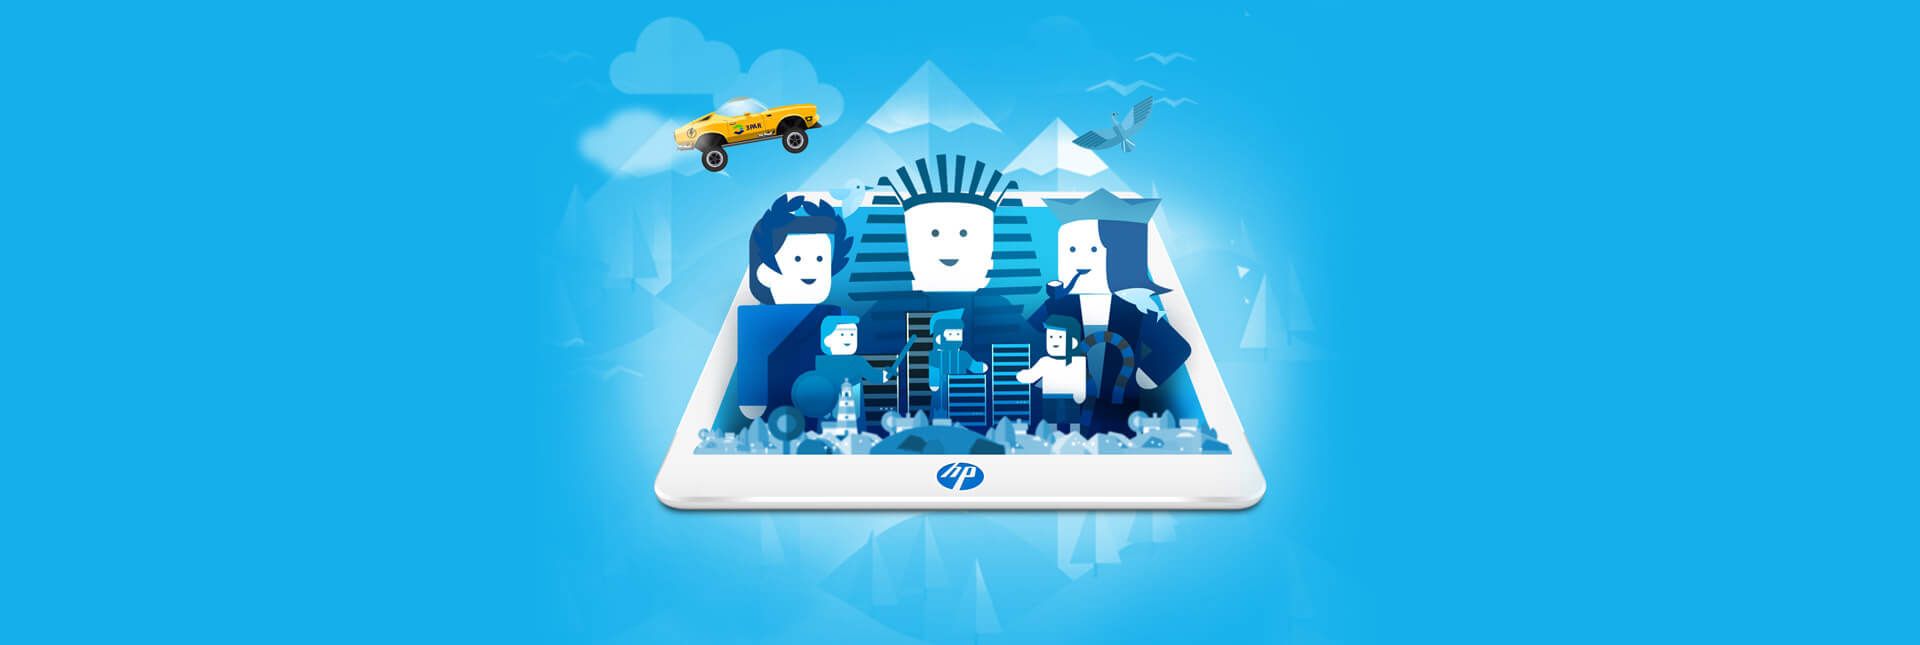 HP ALL FLASH - INTERACTIVE ANIMATED WEBSITE